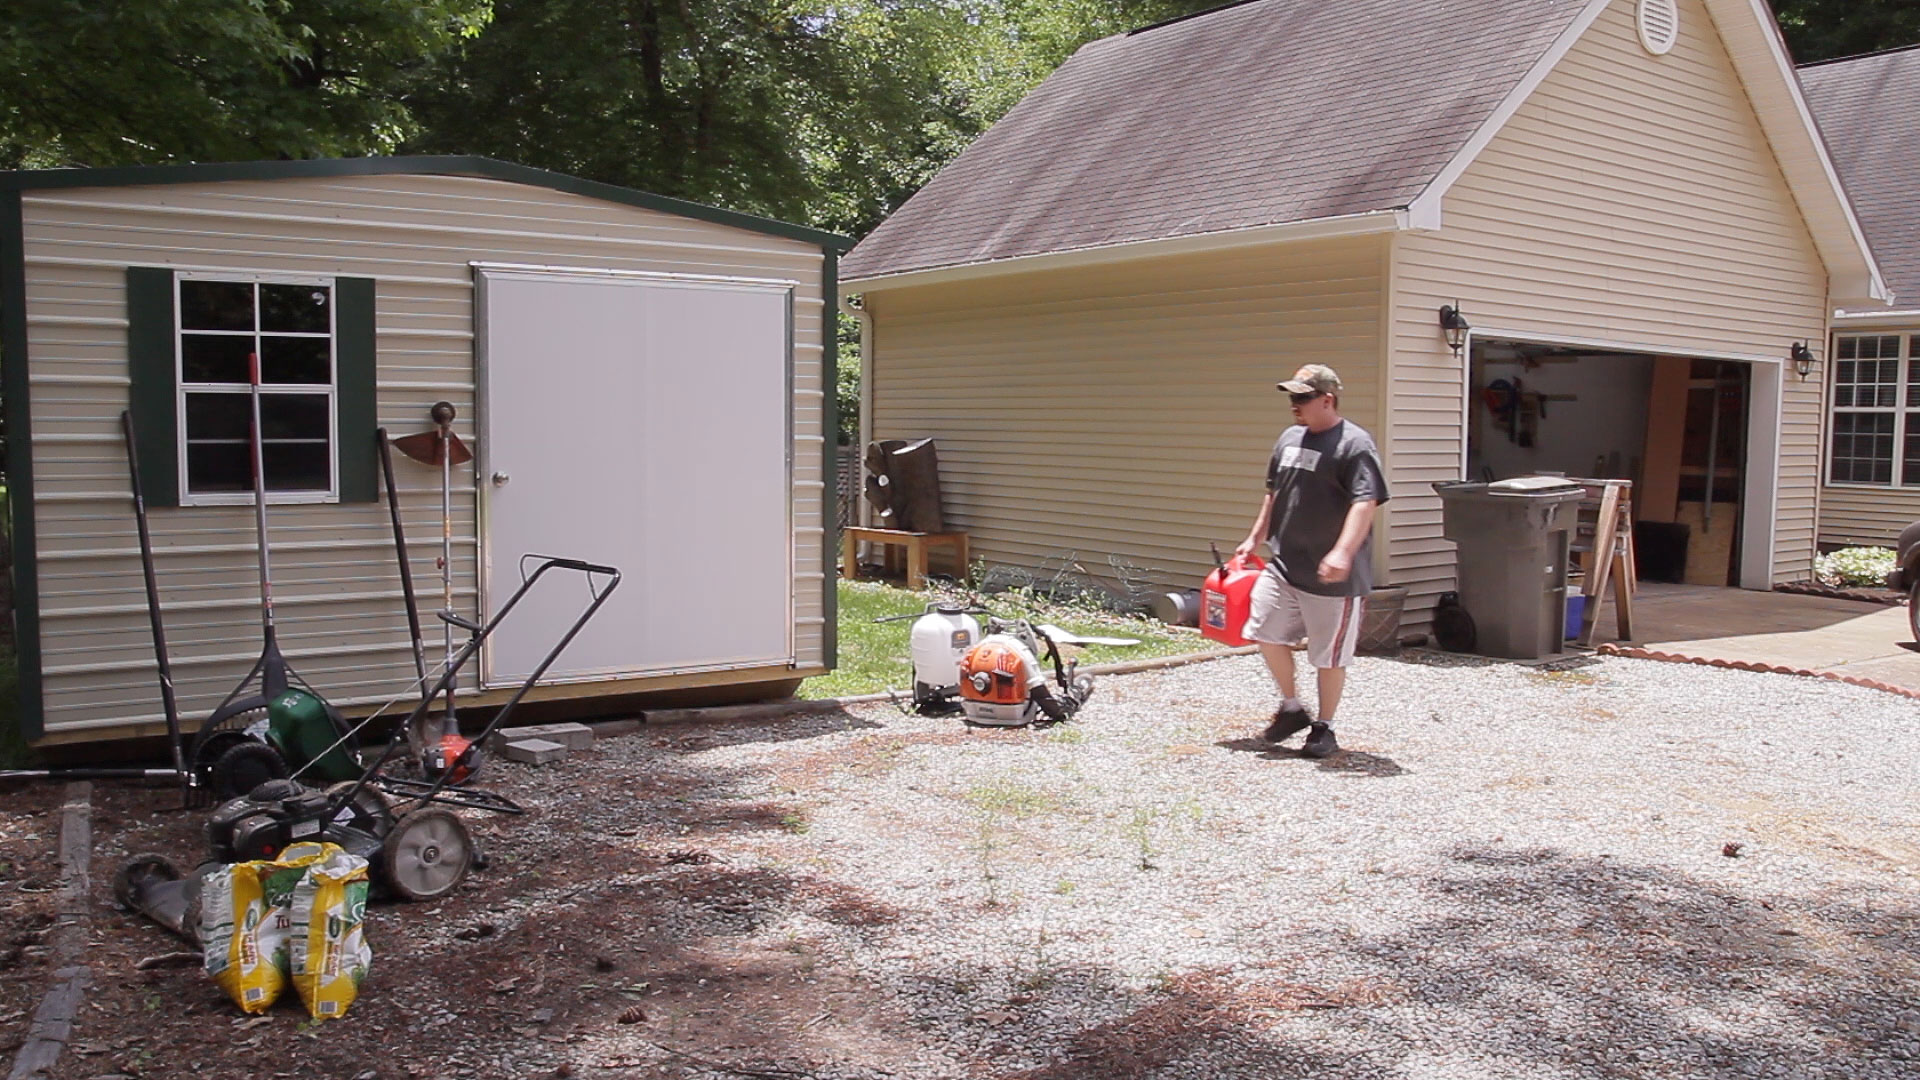 Lawn tool storage in a garden shed jays custom creations for Lawn mower shed